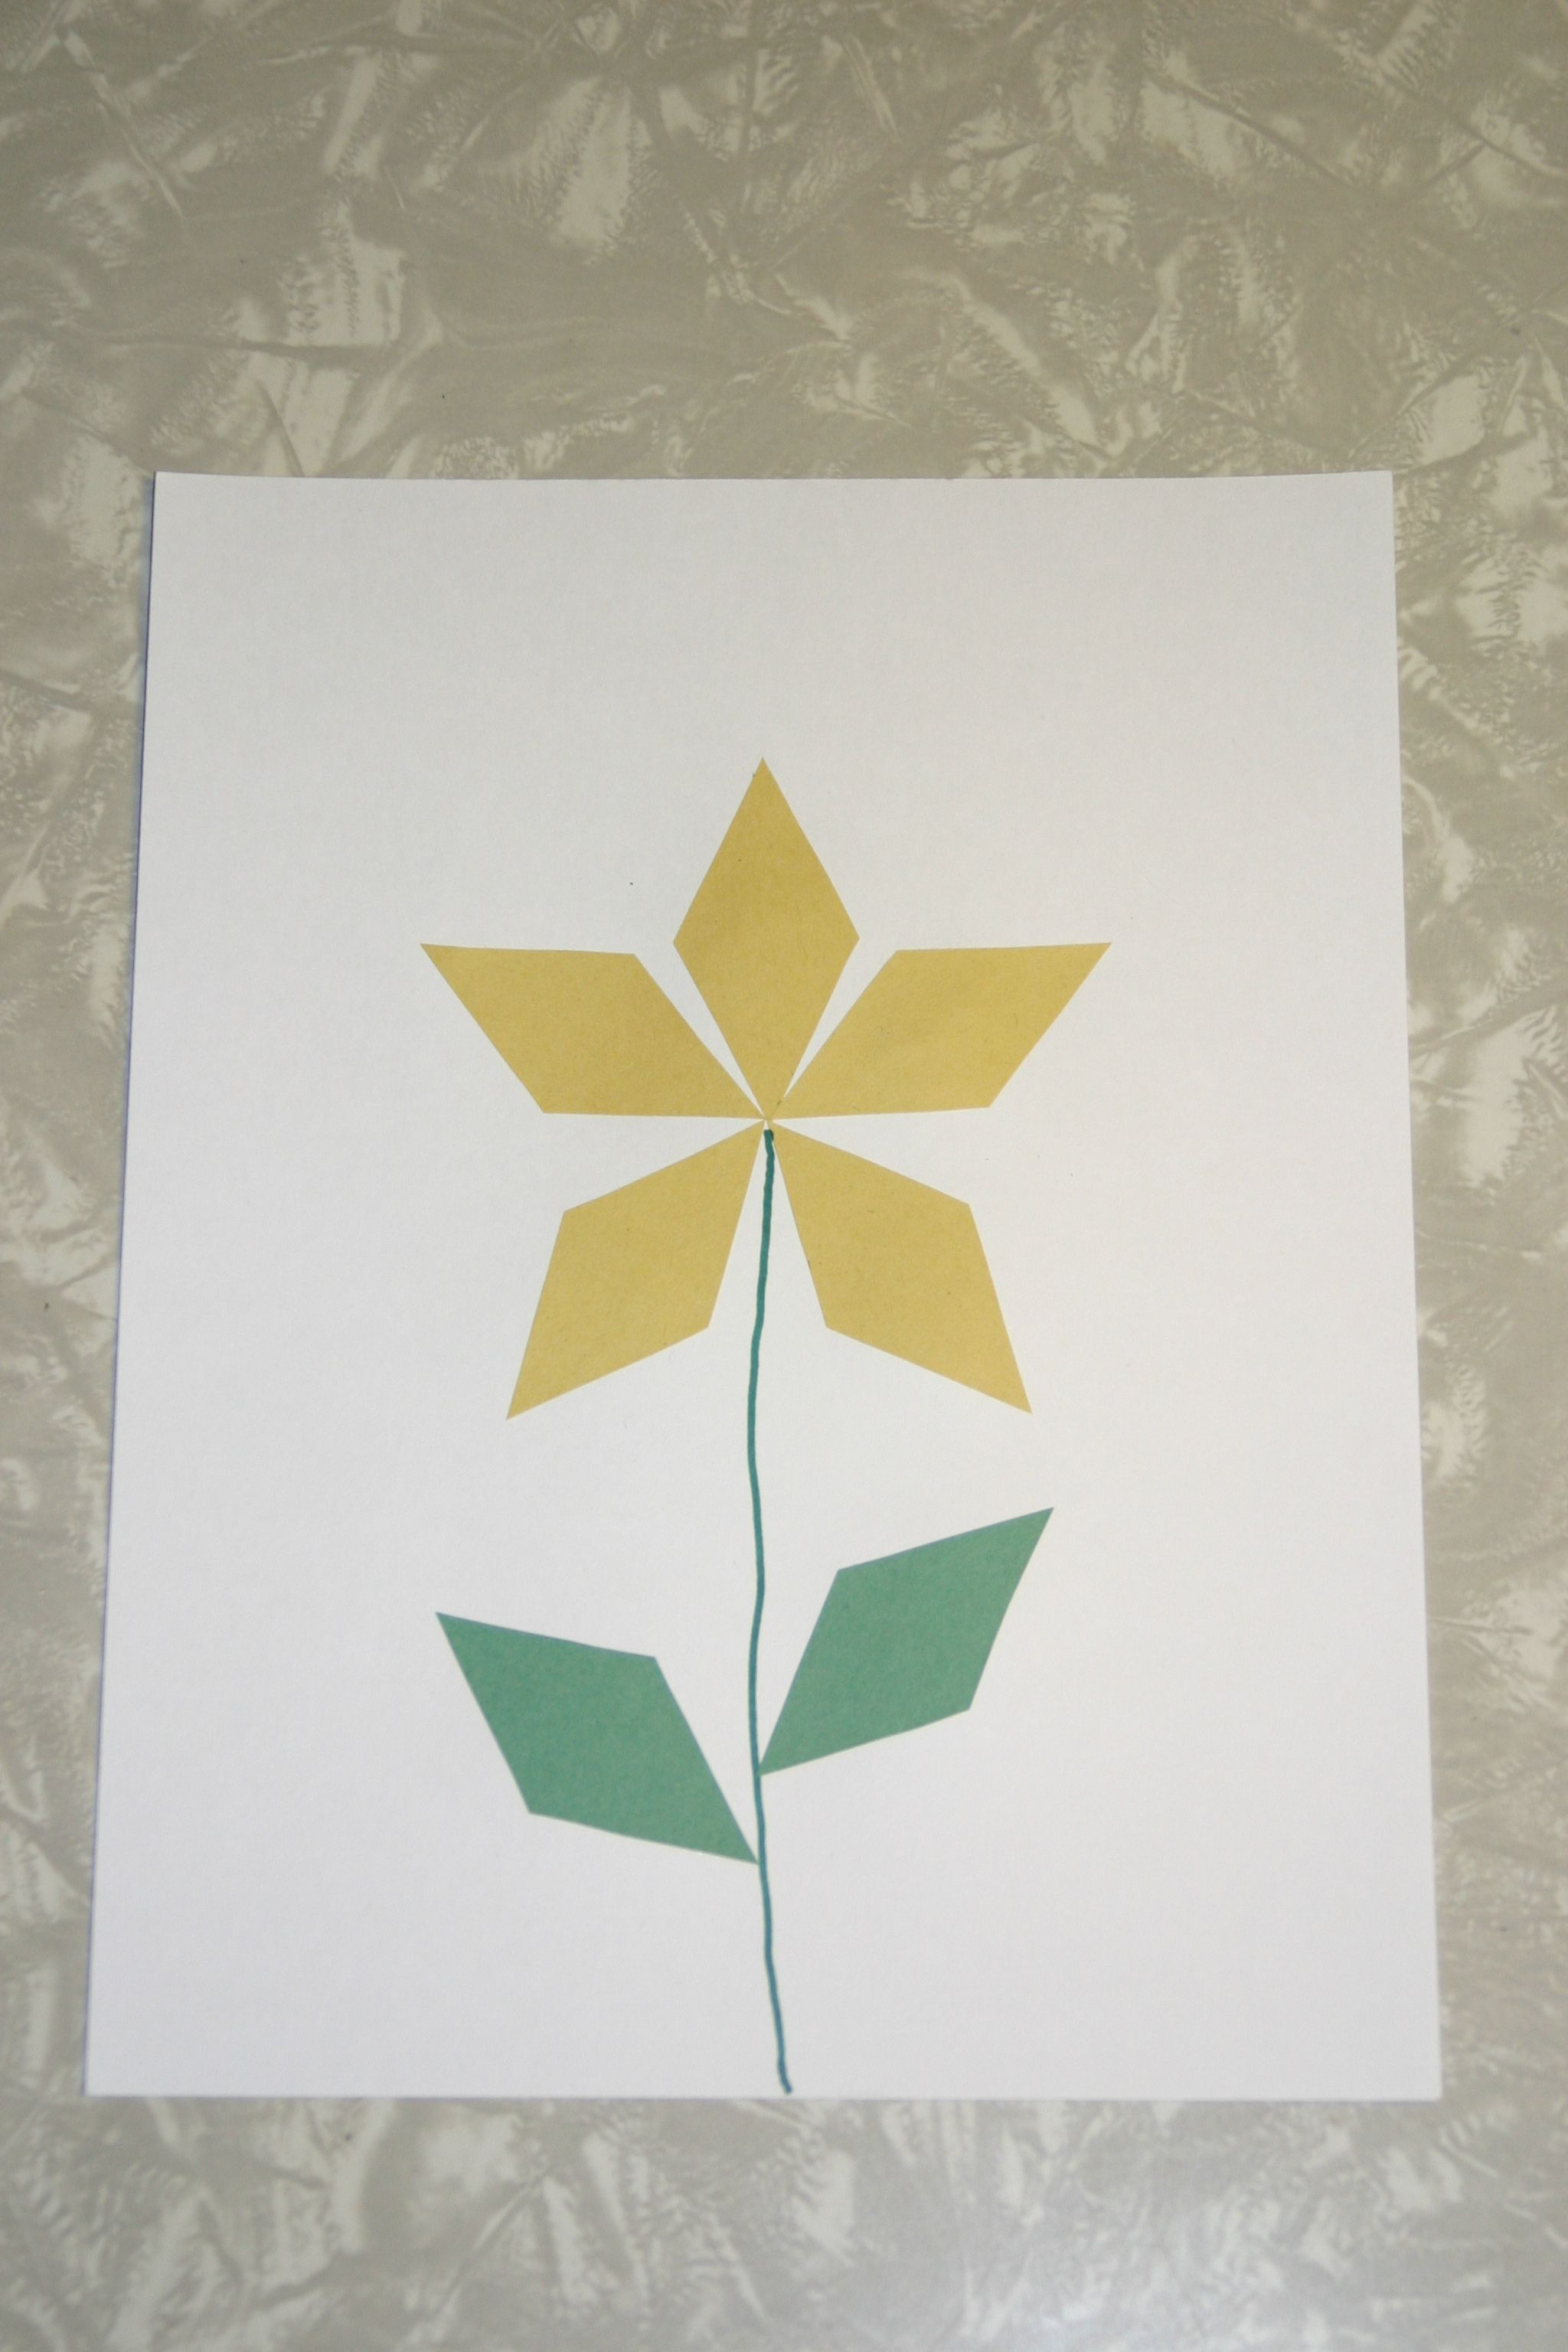 Have Fun Learning About Diamonds With This Diamond Shaped Flower Craft